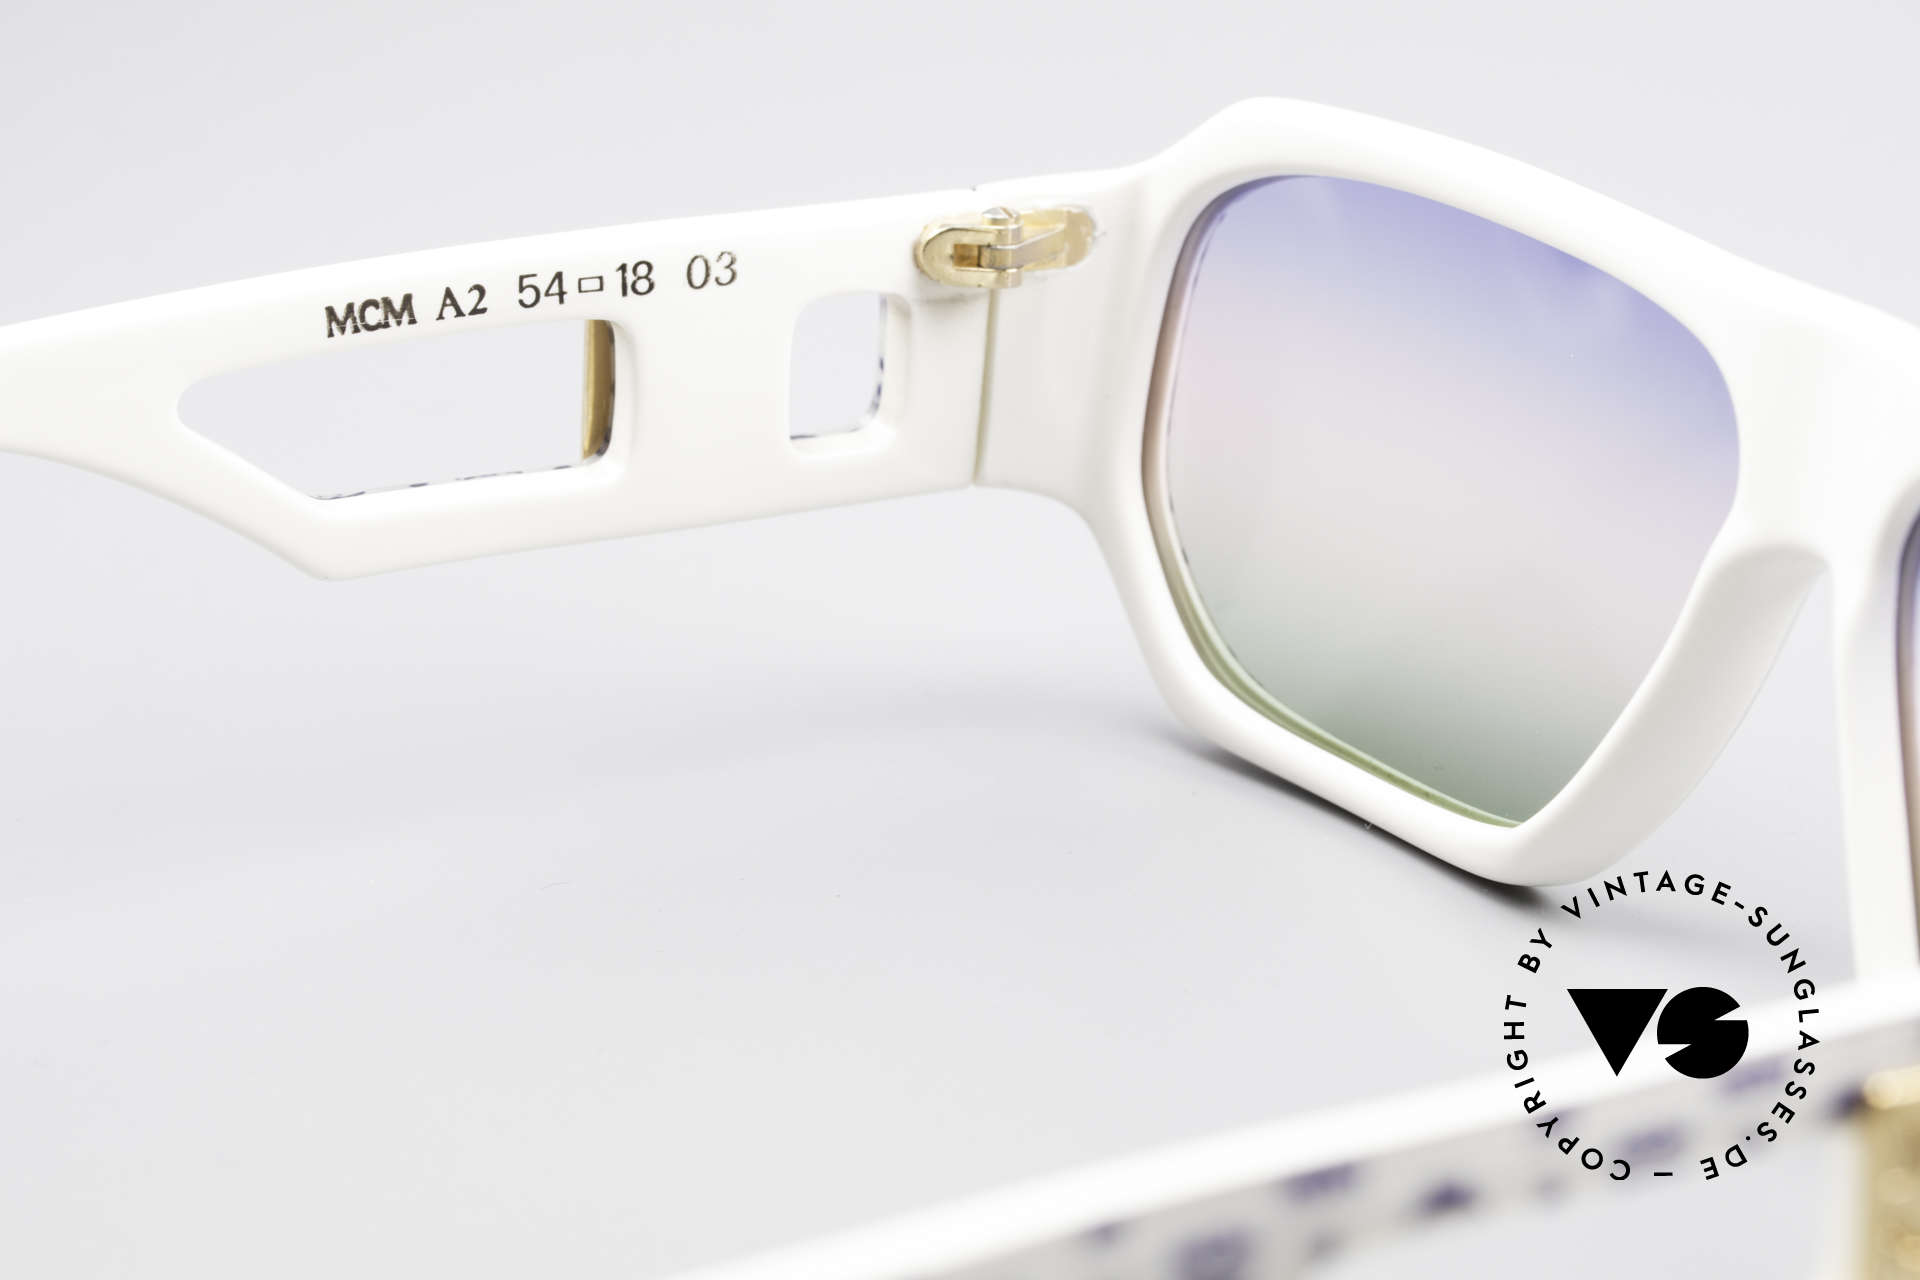 MCM München A2 Rare 80's Designer Sunglasses, new old stock; like all our vintage MCM sunglasses, Made for Men and Women